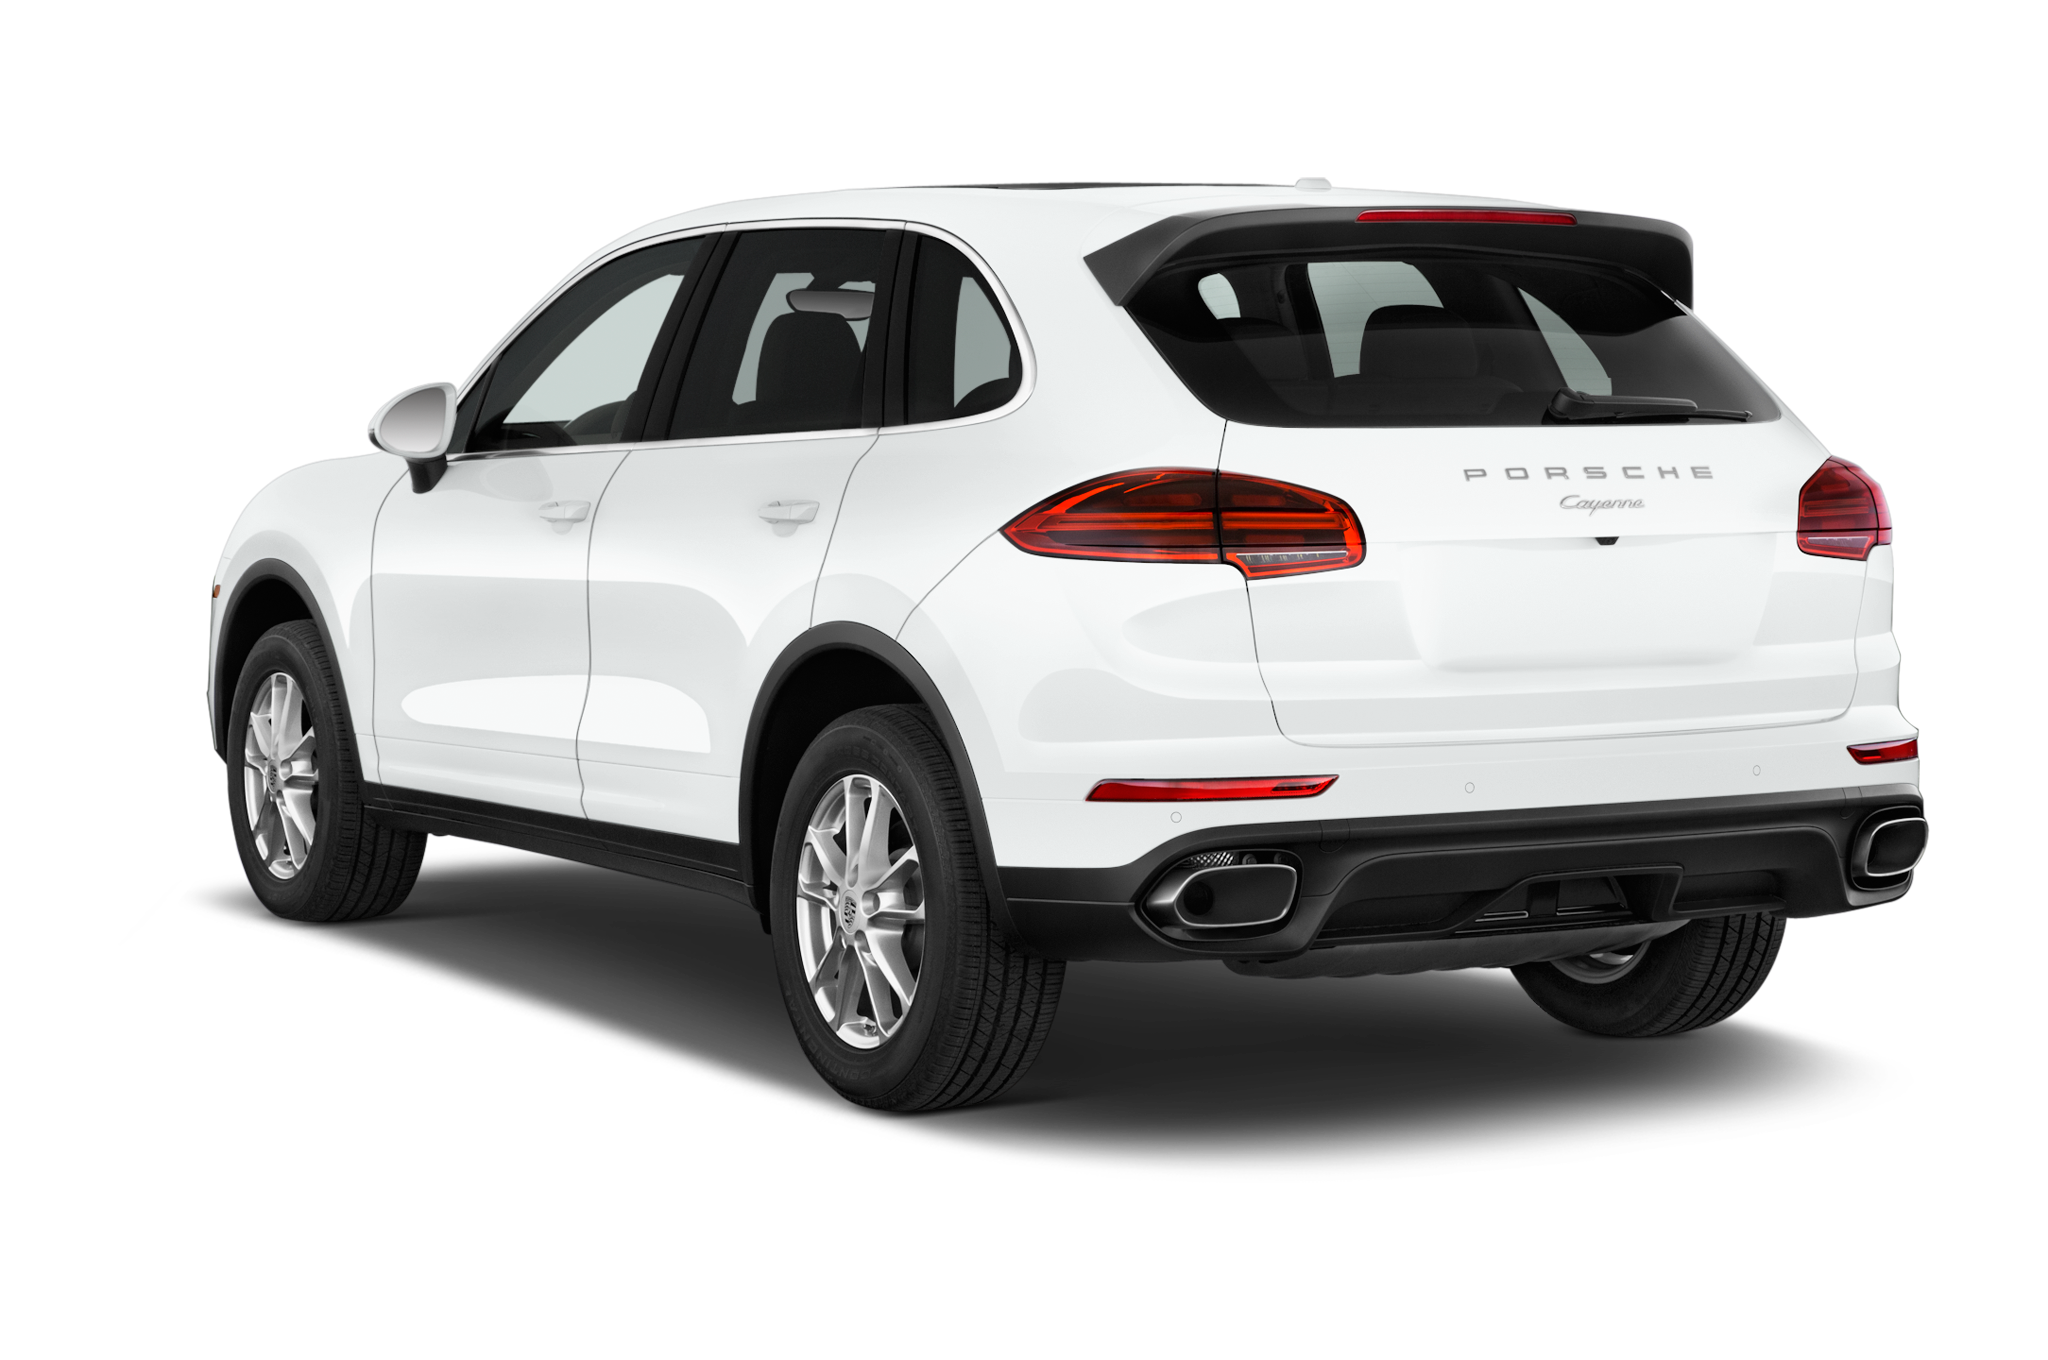 porsche cayenne and cayenne s e hybrid get platinum edition trim. Black Bedroom Furniture Sets. Home Design Ideas